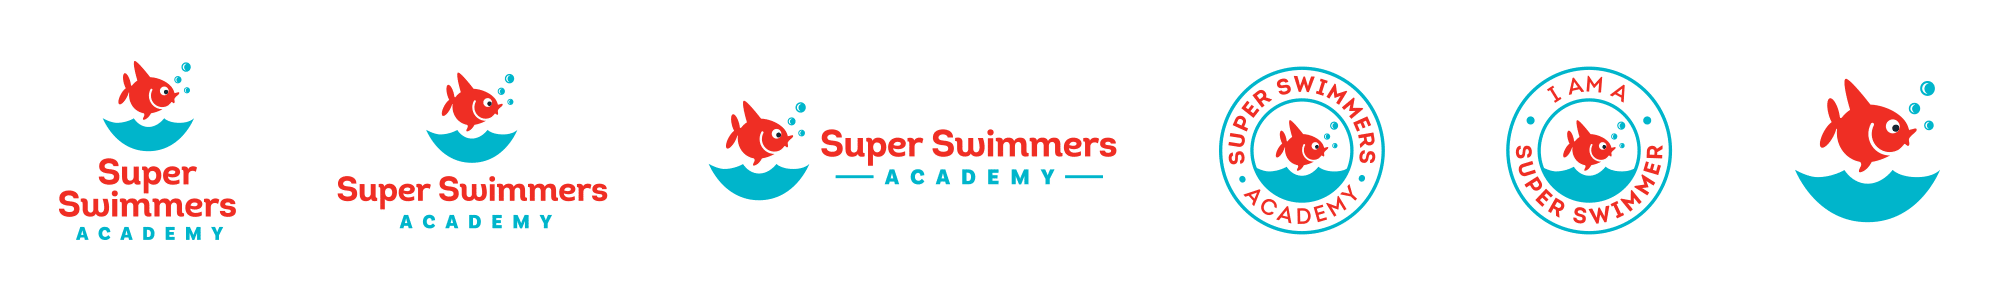 Super Swimmers Logo deliverables